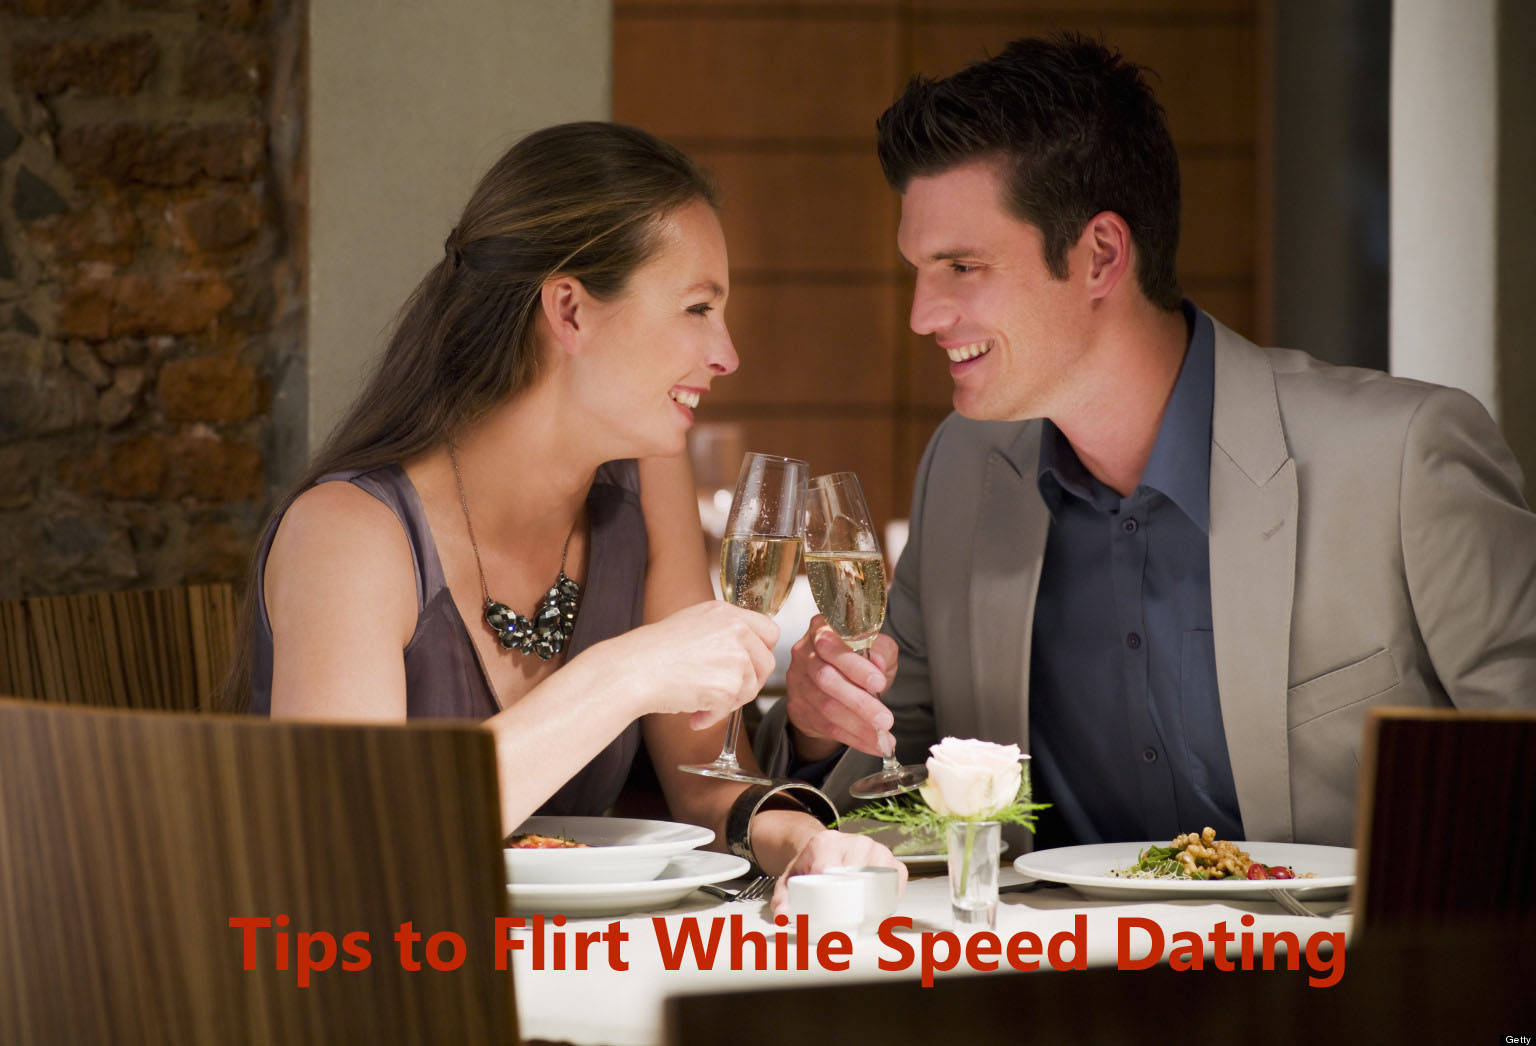 tips to flirt while speed dating